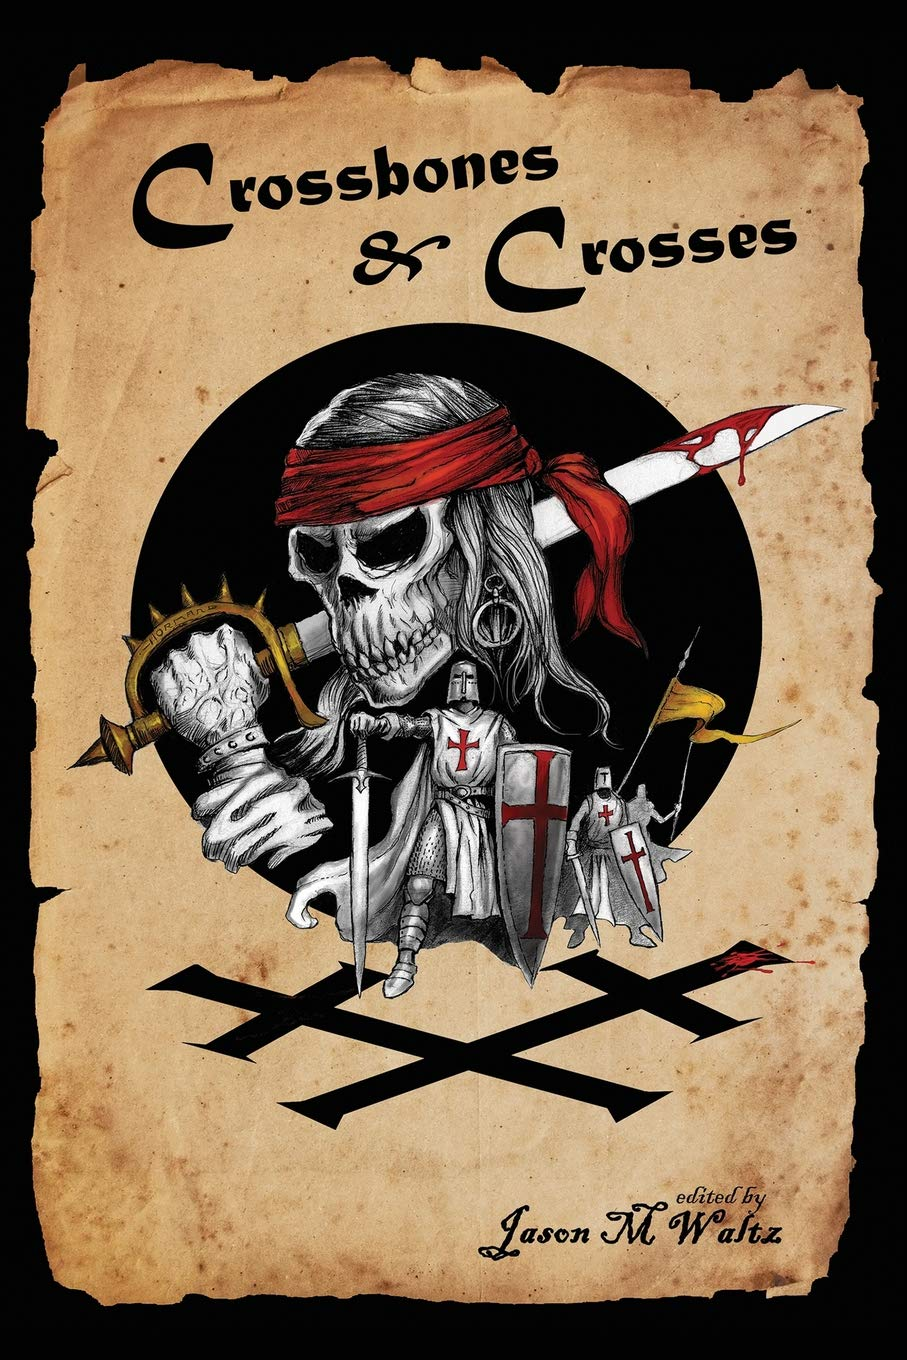 Crossbones and crosses